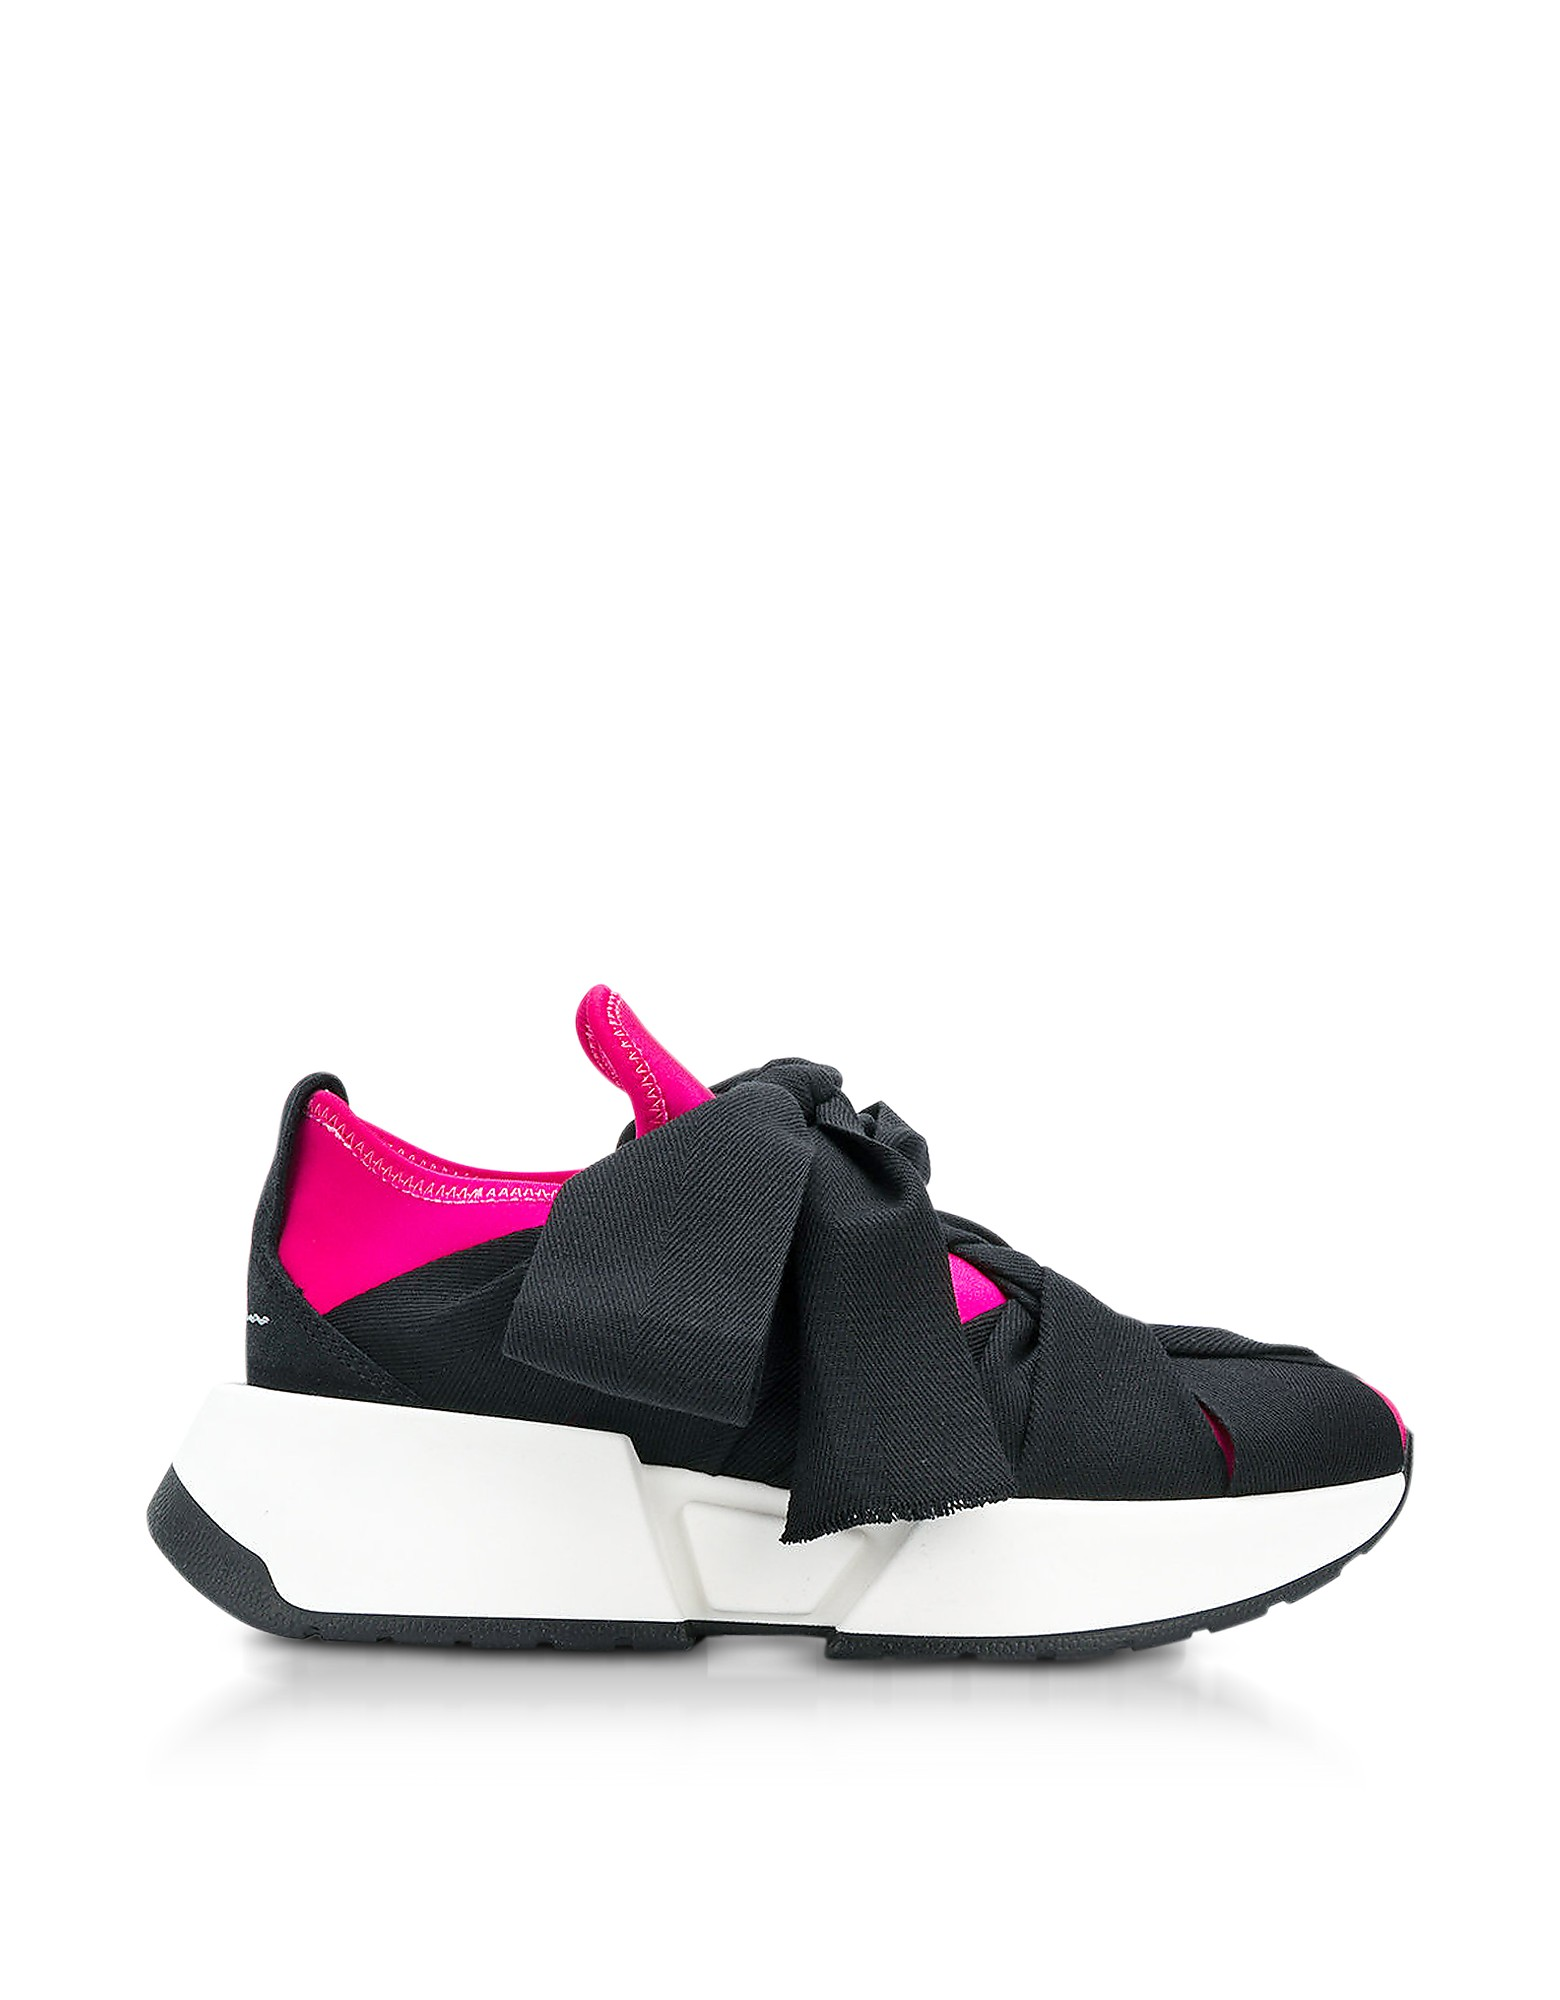 Maison Martin Margiela Designer Shoes, Color Block Nylon and Leather Sneakers